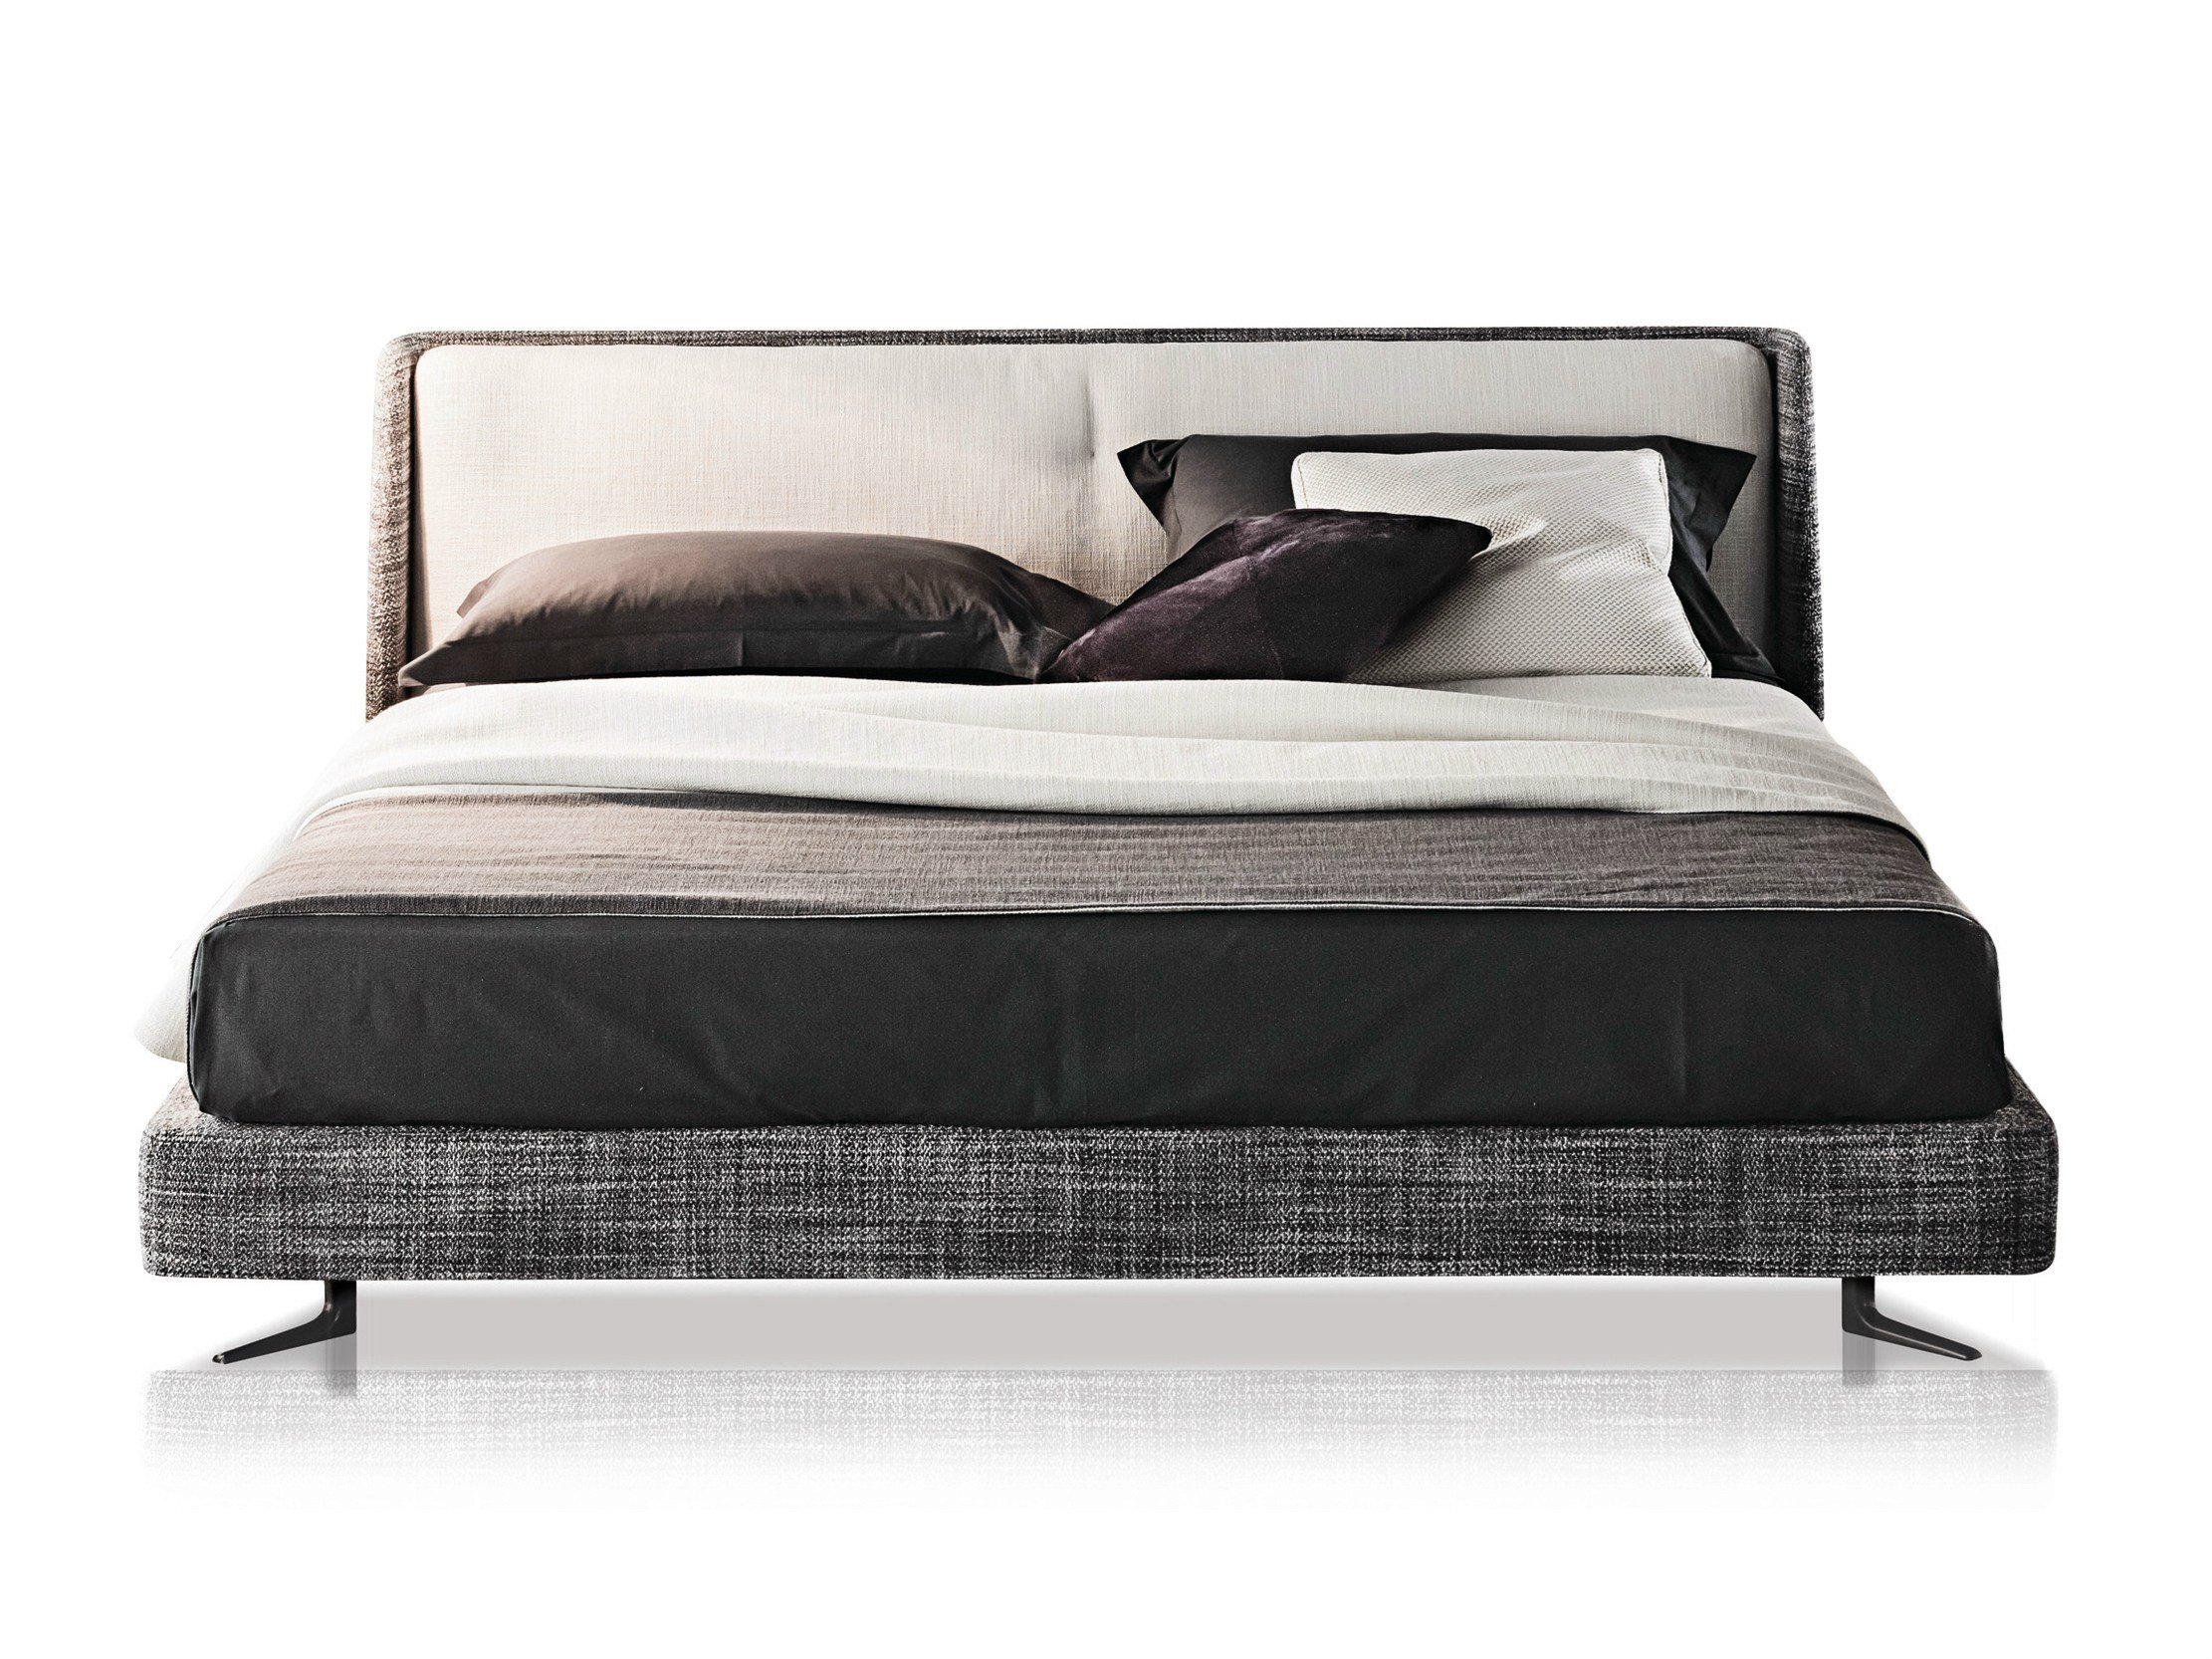 Bed Spencer Bed By Minotti Design Rodolfo Dordoni